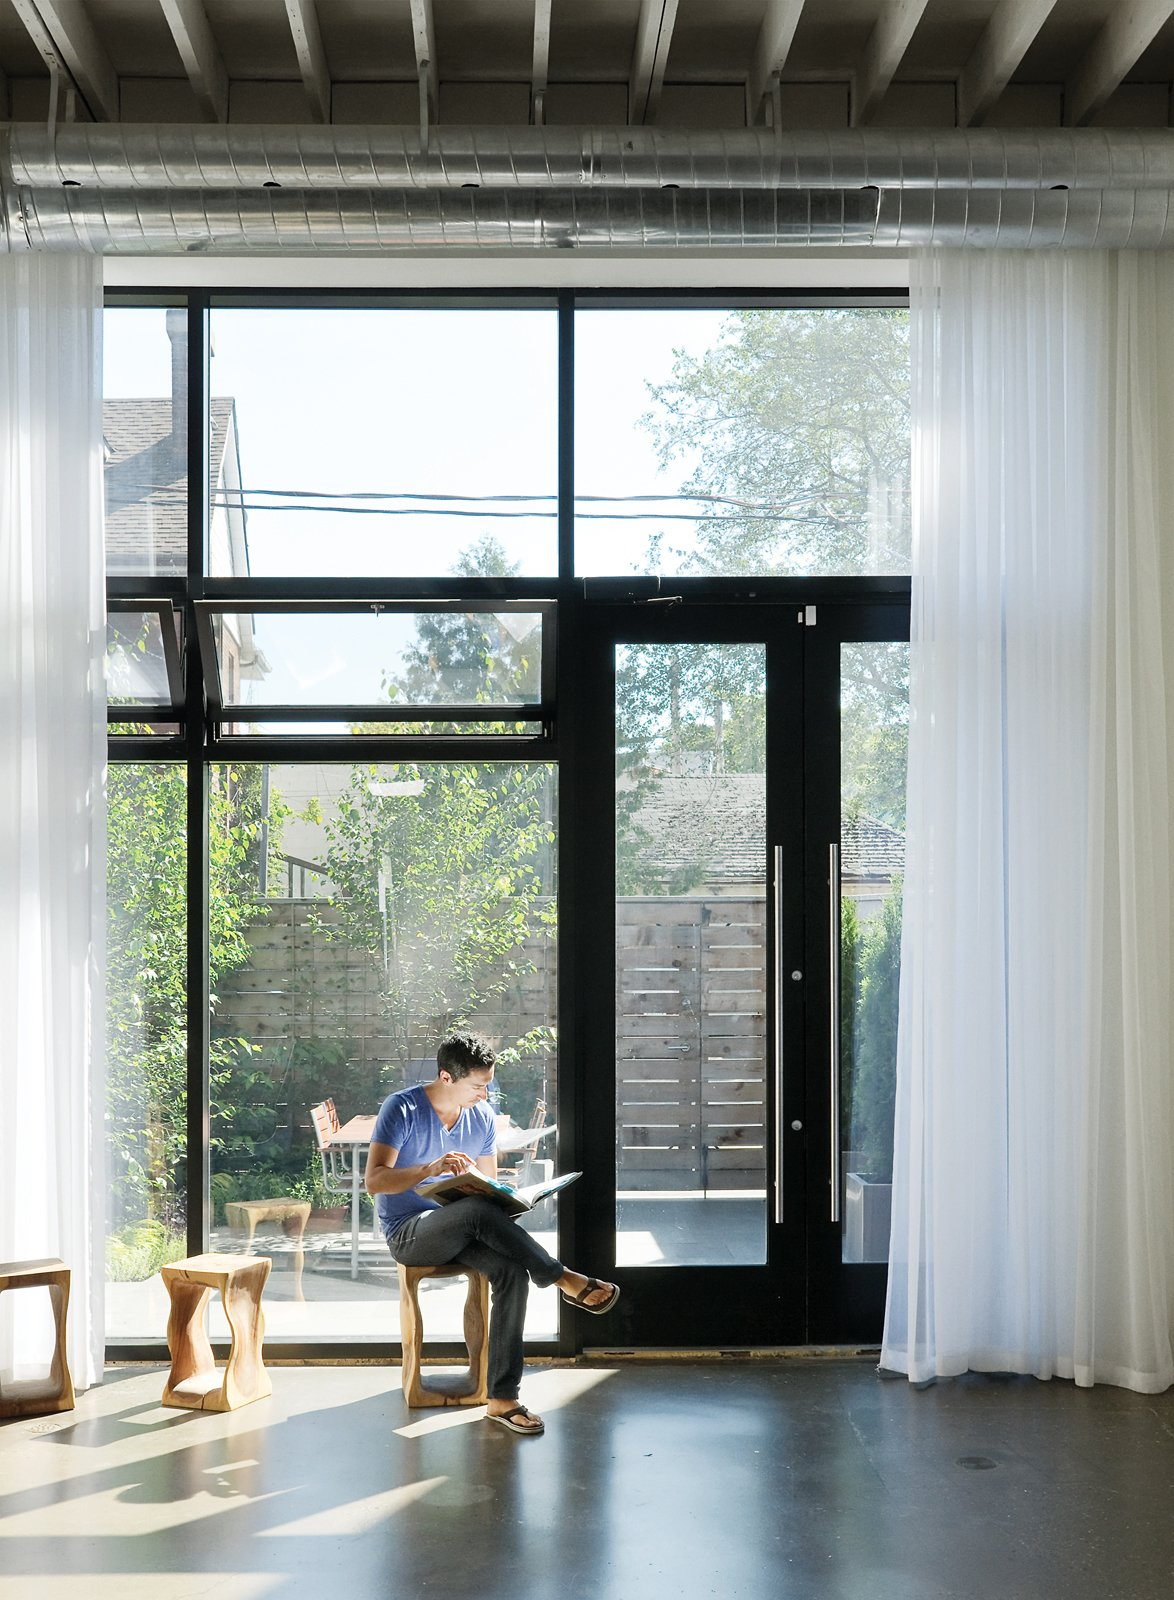 Windows and Metal In the house's front room Monkman relaxes on a stool from local retailer Andrew Richard Designs. A new window system draws in sunlight and views of the front courtyard designed by local landscape architect Terry McGlade, the building's former owner.  Photo 5 of 12 in 12 Striking Examples of Clerestory Windows in Modern Homes from An Art Studio That Would Make Picasso Jealous